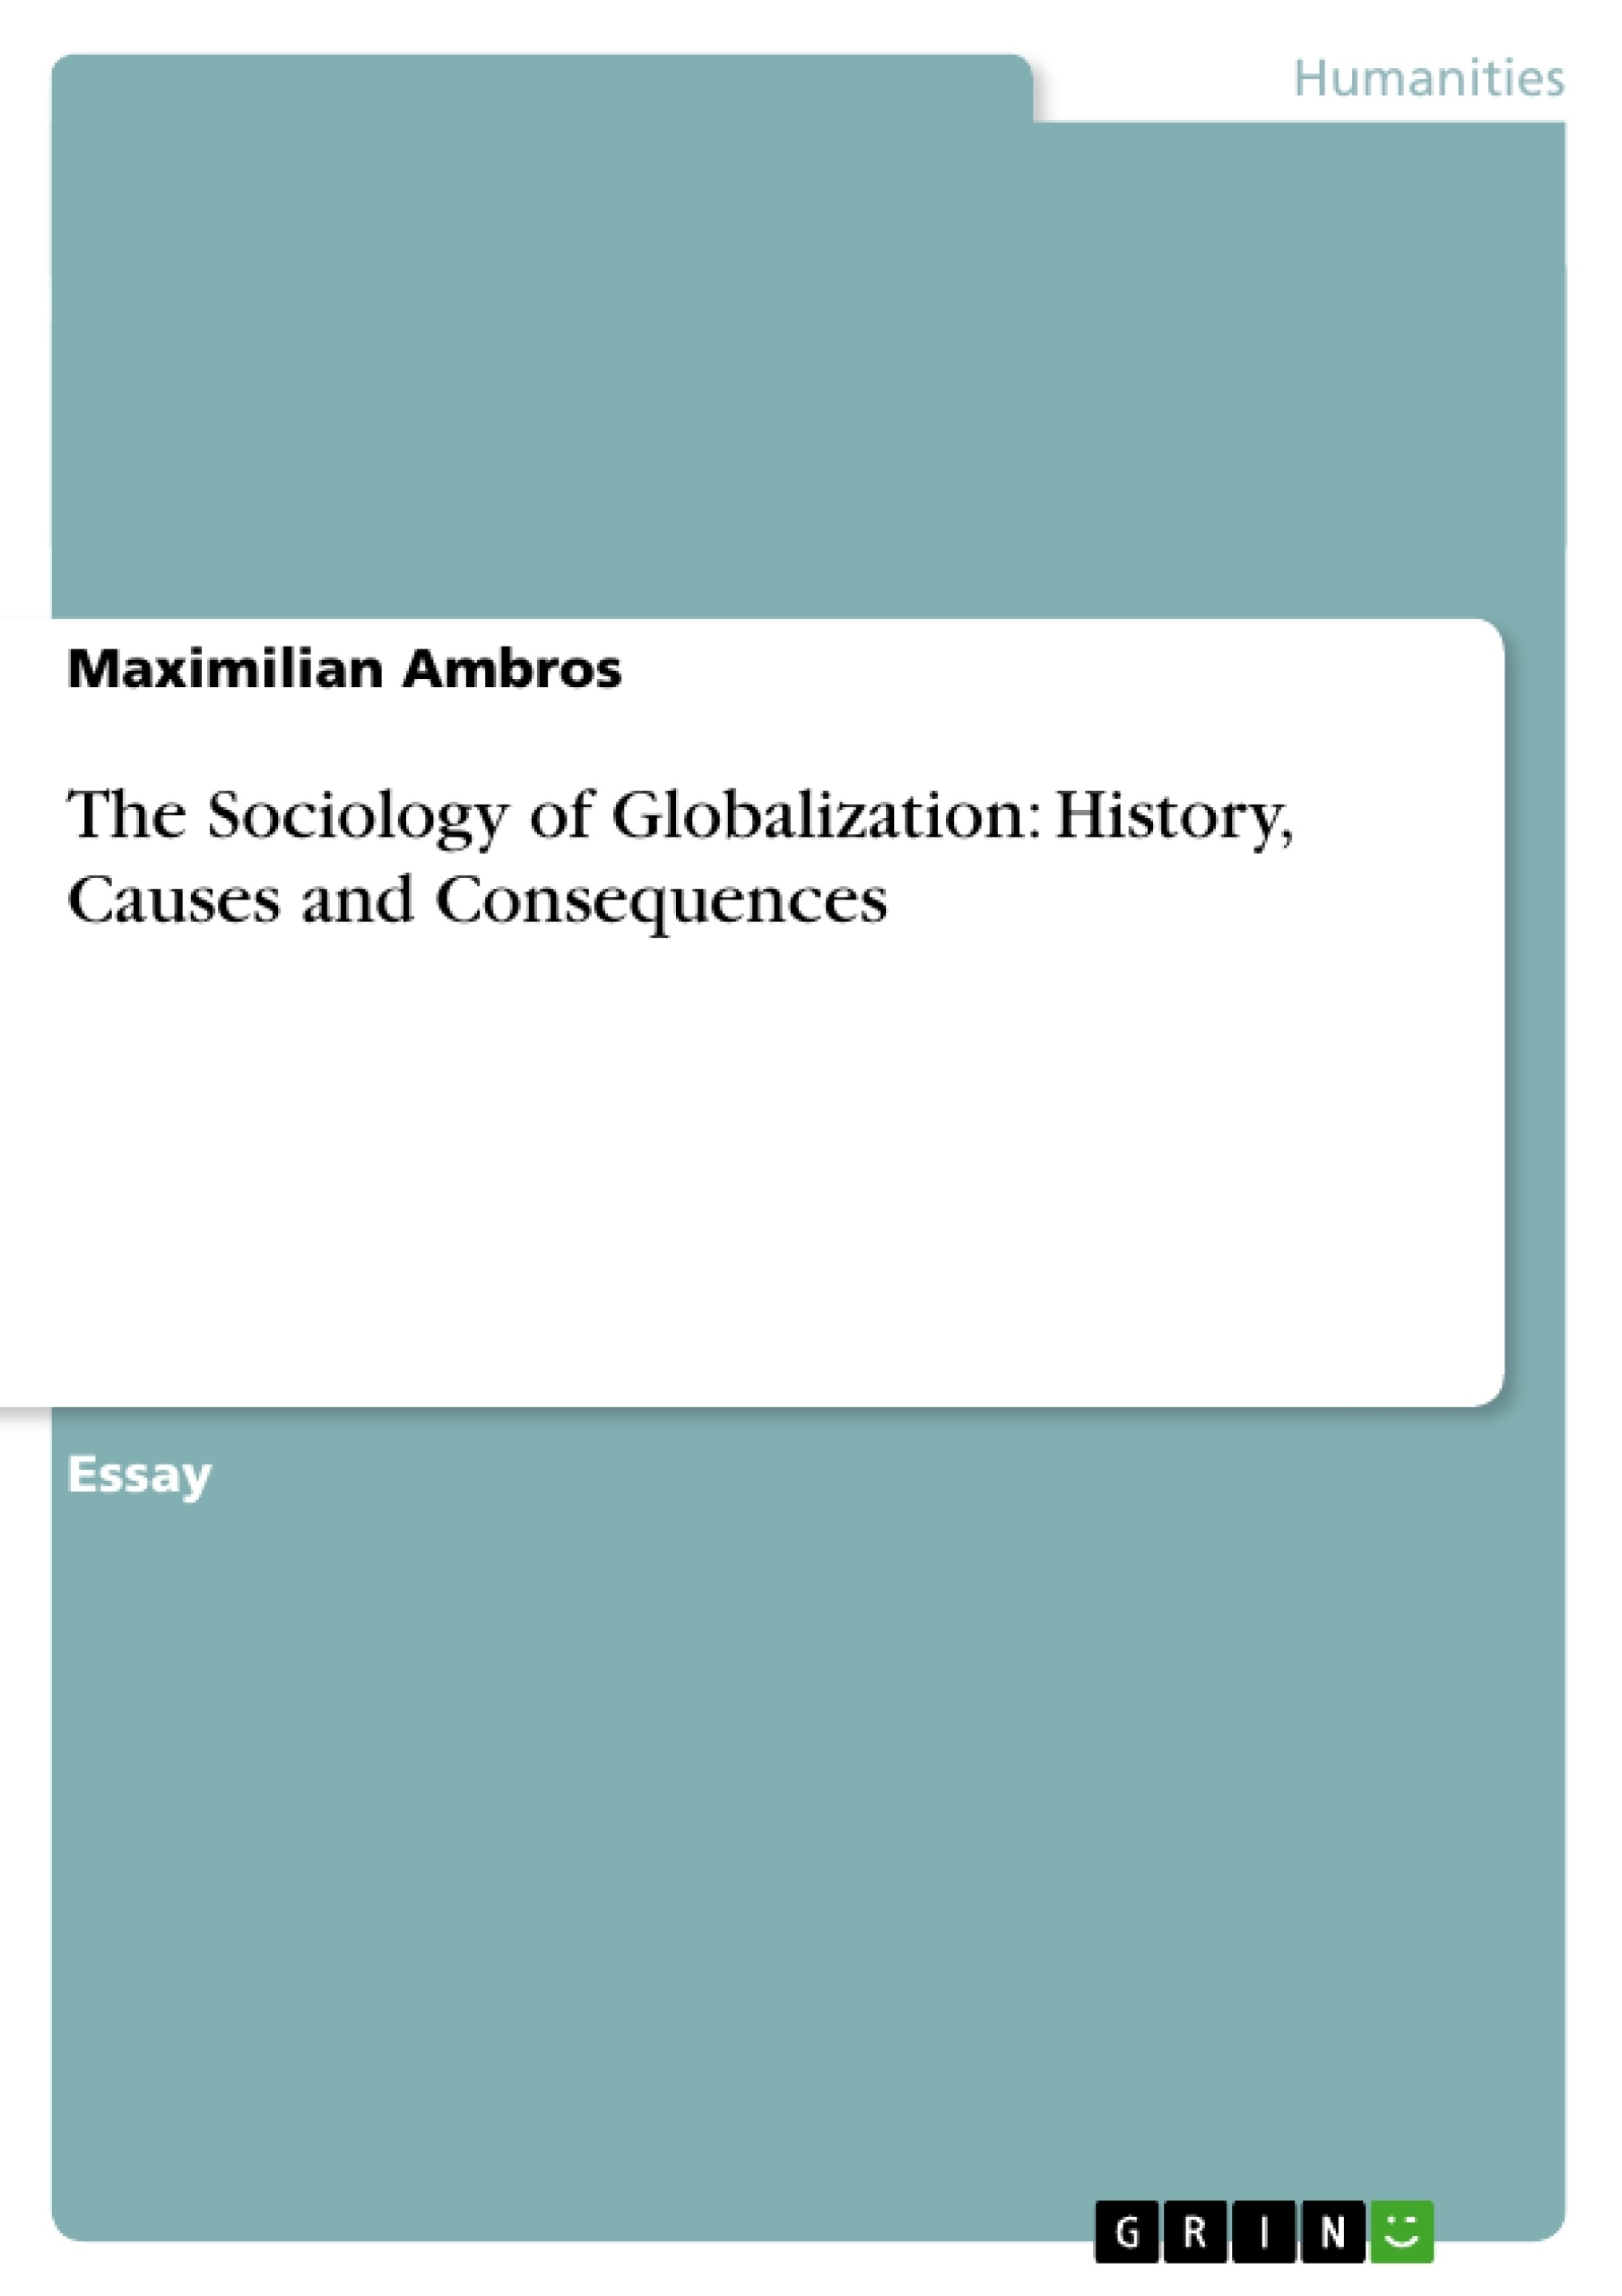 Title: The Sociology of Globalization: History, Causes and Consequences